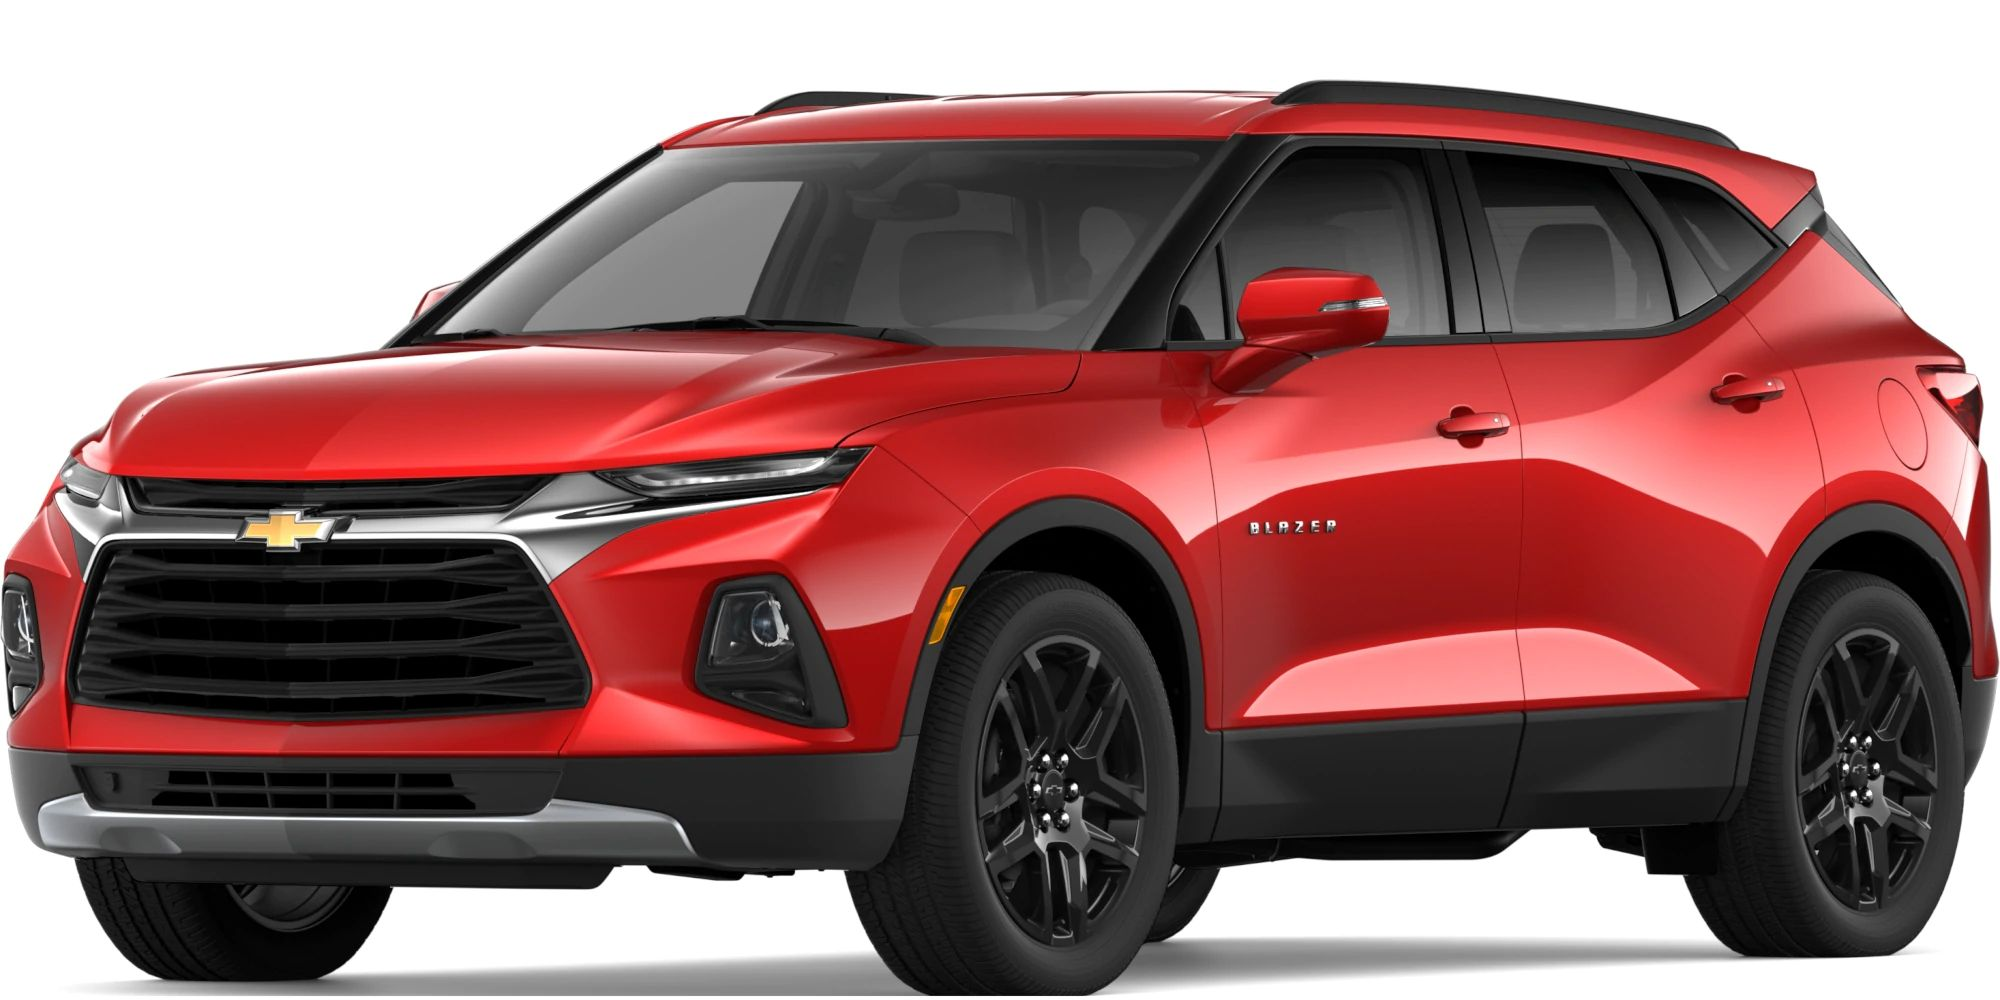 2019 Chevy Blazer Exterior Driver Side Front Profile in Red Hot